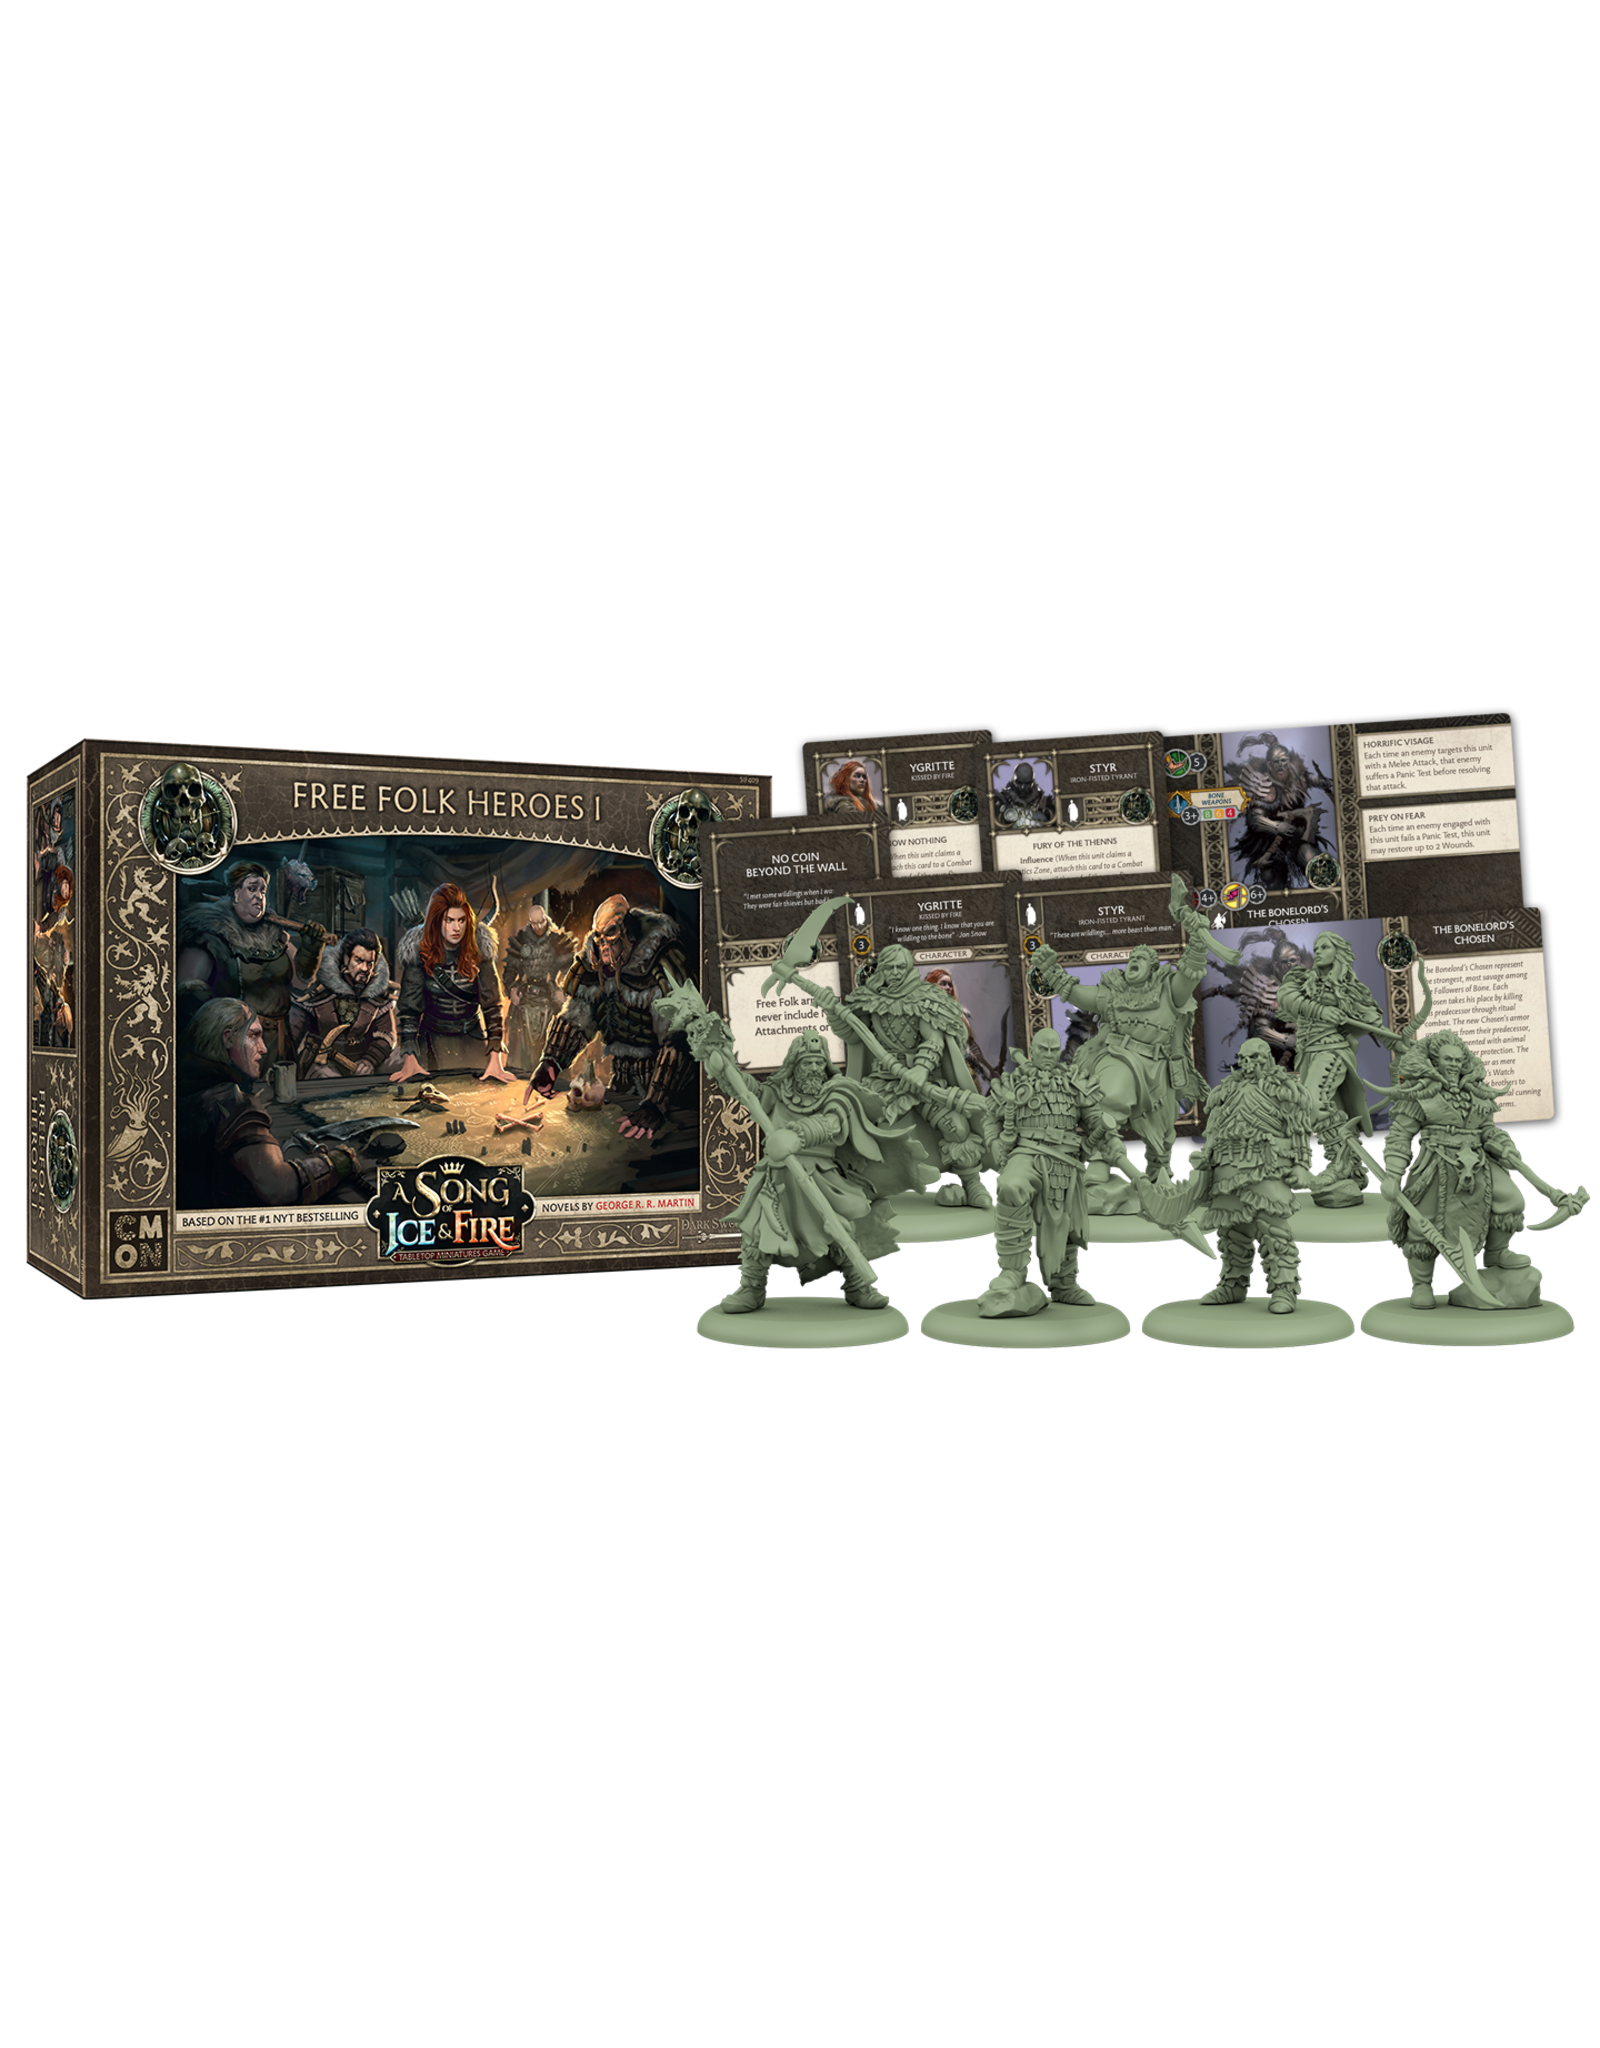 CMON A SONG OF ICE & FIRE: FREE FOLK HEROES BOX 1